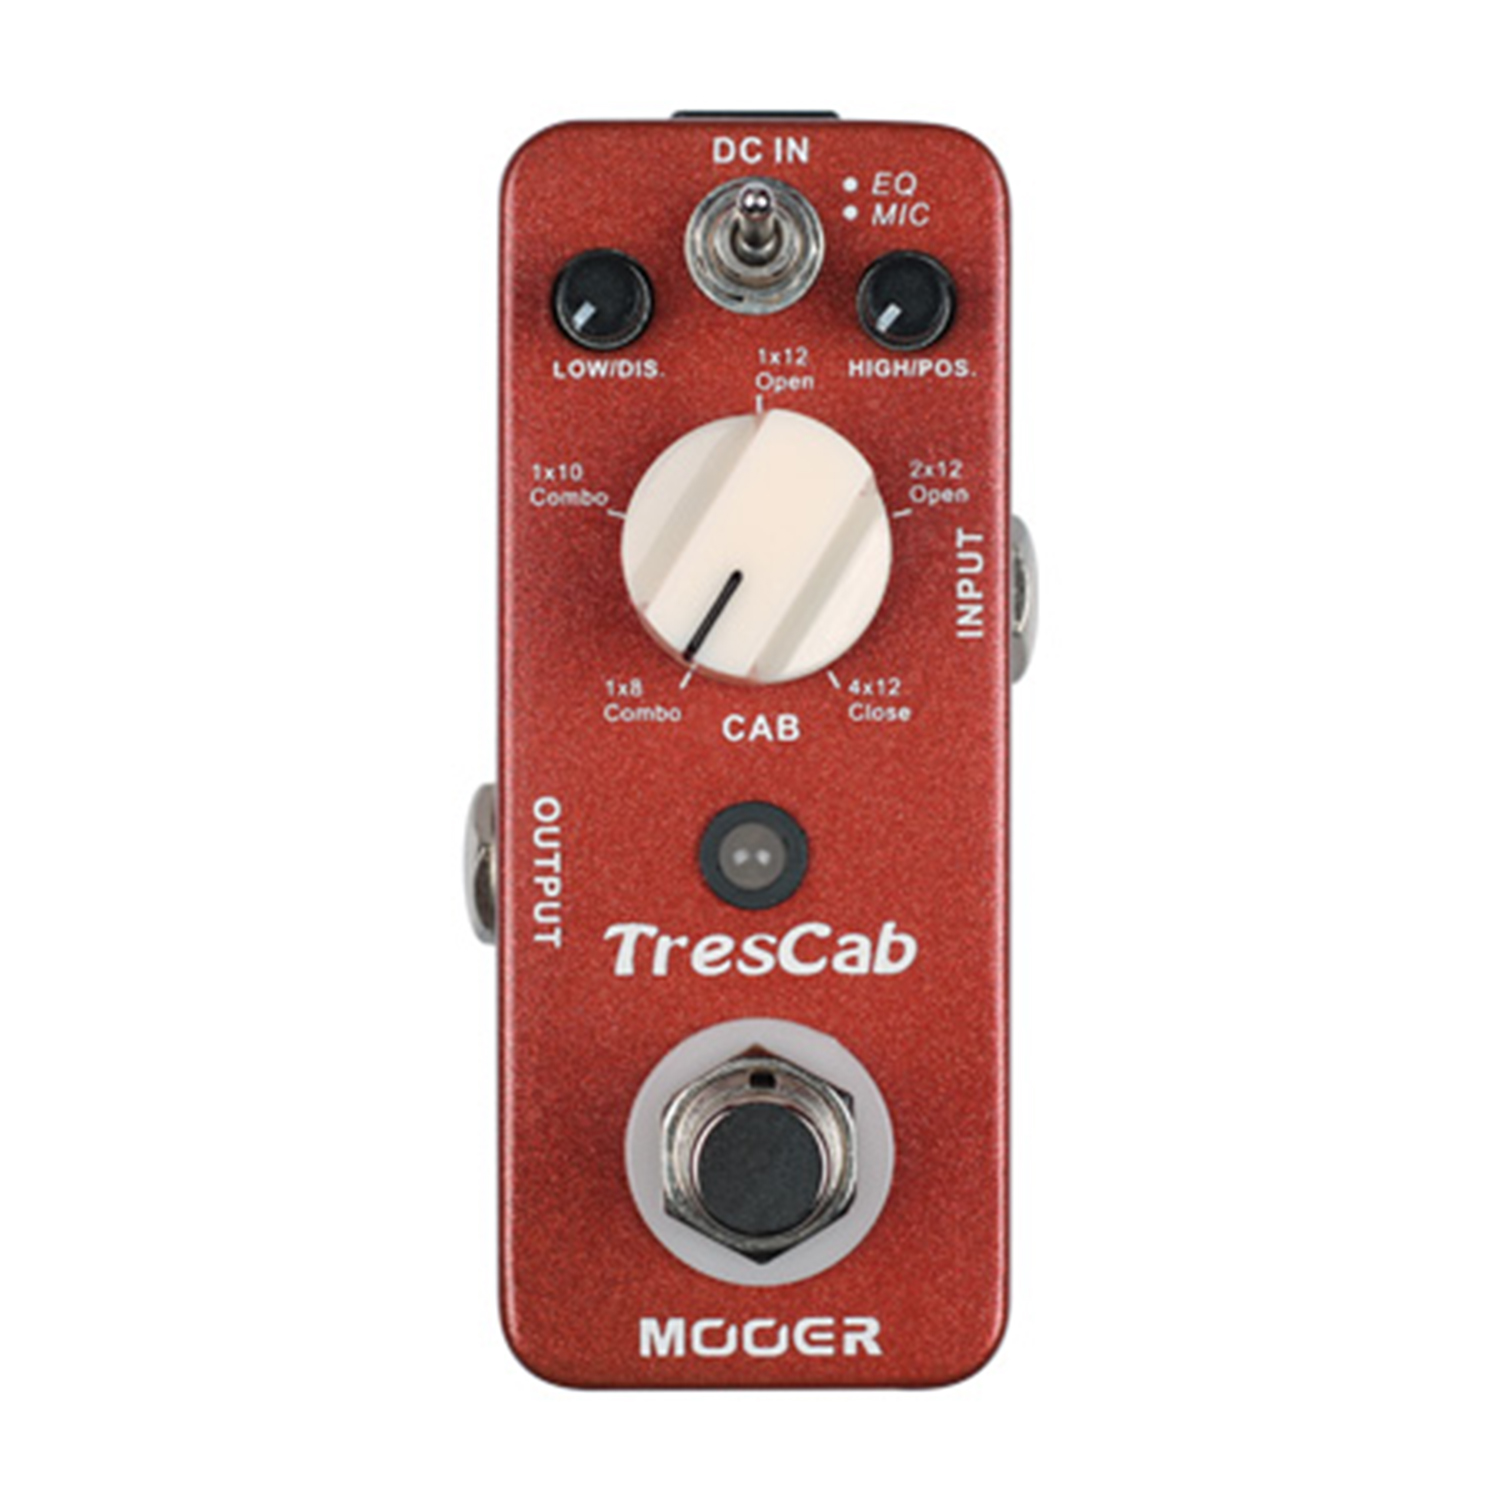 Mooer TresCab Digital Cab Simulated Guitar Effect Pedal 5 Cab Choices 2 Balanced Adjustment Microphone Pick Up Location Effects фаркоп aragon на ford transit not for chassis with cab sauf pick up 04 2000 тип крюка g г в н 2500 80кг e2005cg